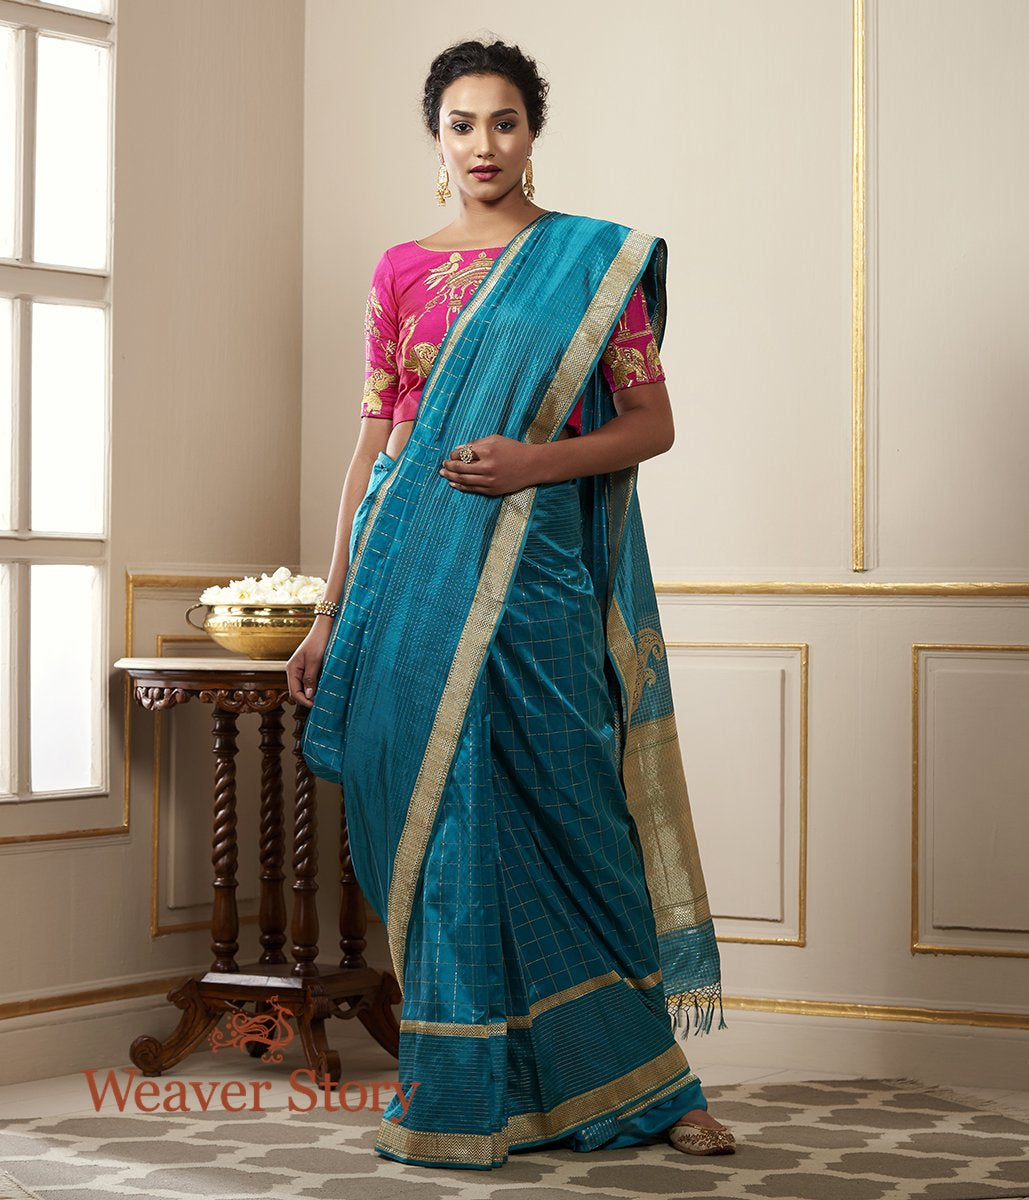 Handwoven Peacock Blue Zari Checks Saree with Konia